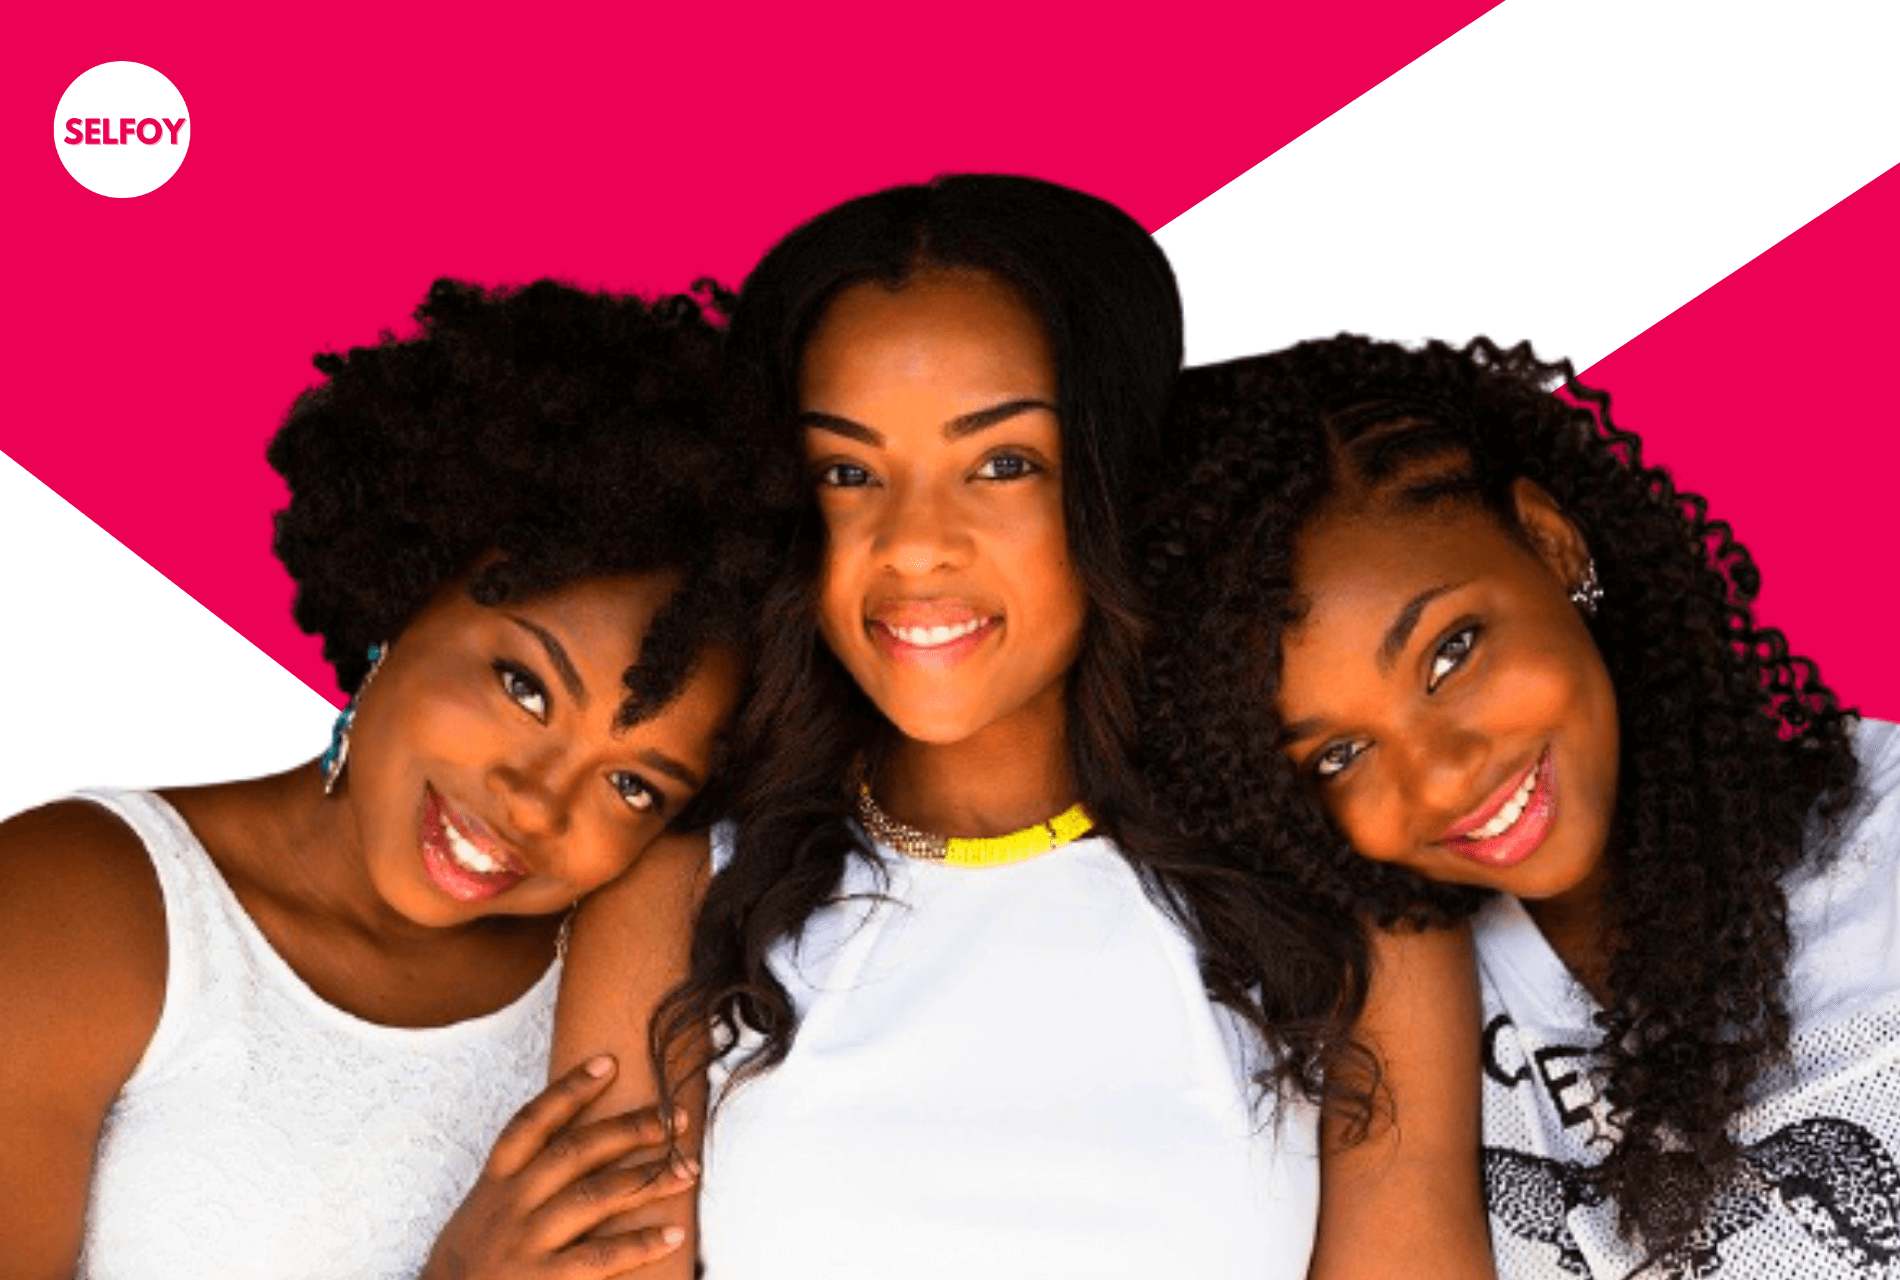 3-girls-show-how-to-become-a-better-person-inside-and-out.